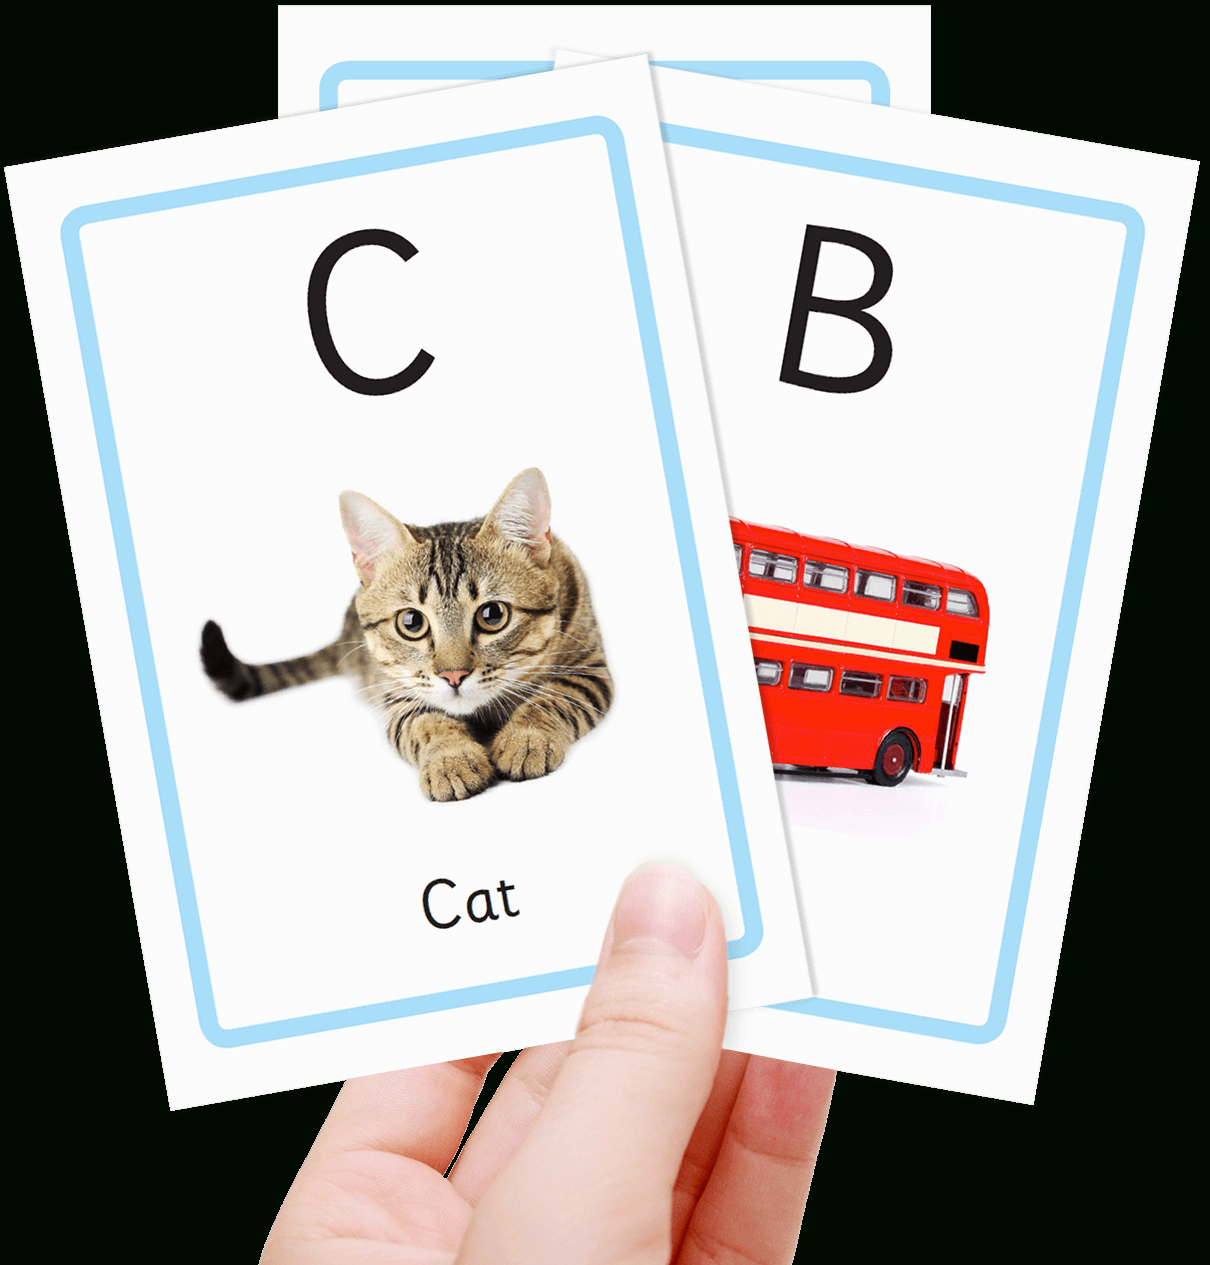 Free Alphabet Flashcards For Kids - Totcards - Free Printable Abc Flashcards With Pictures